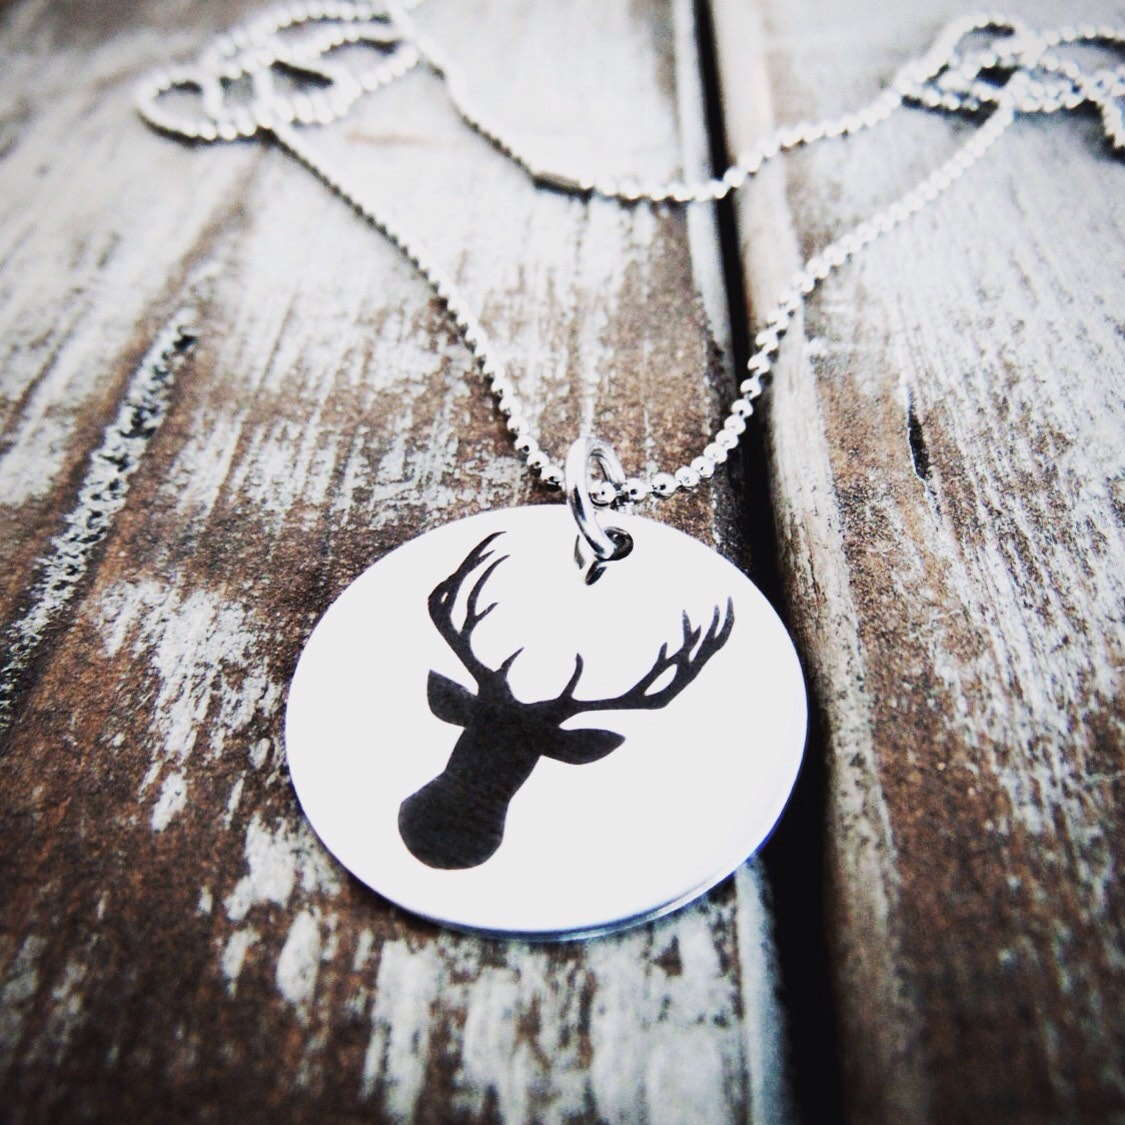 Deer necklace steel gold or rose gold stagdeerantler pendant deer necklace steel gold or rose gold stagdeerantler pendant customized back option engraved silhouette deer head graphic charm aloadofball Gallery